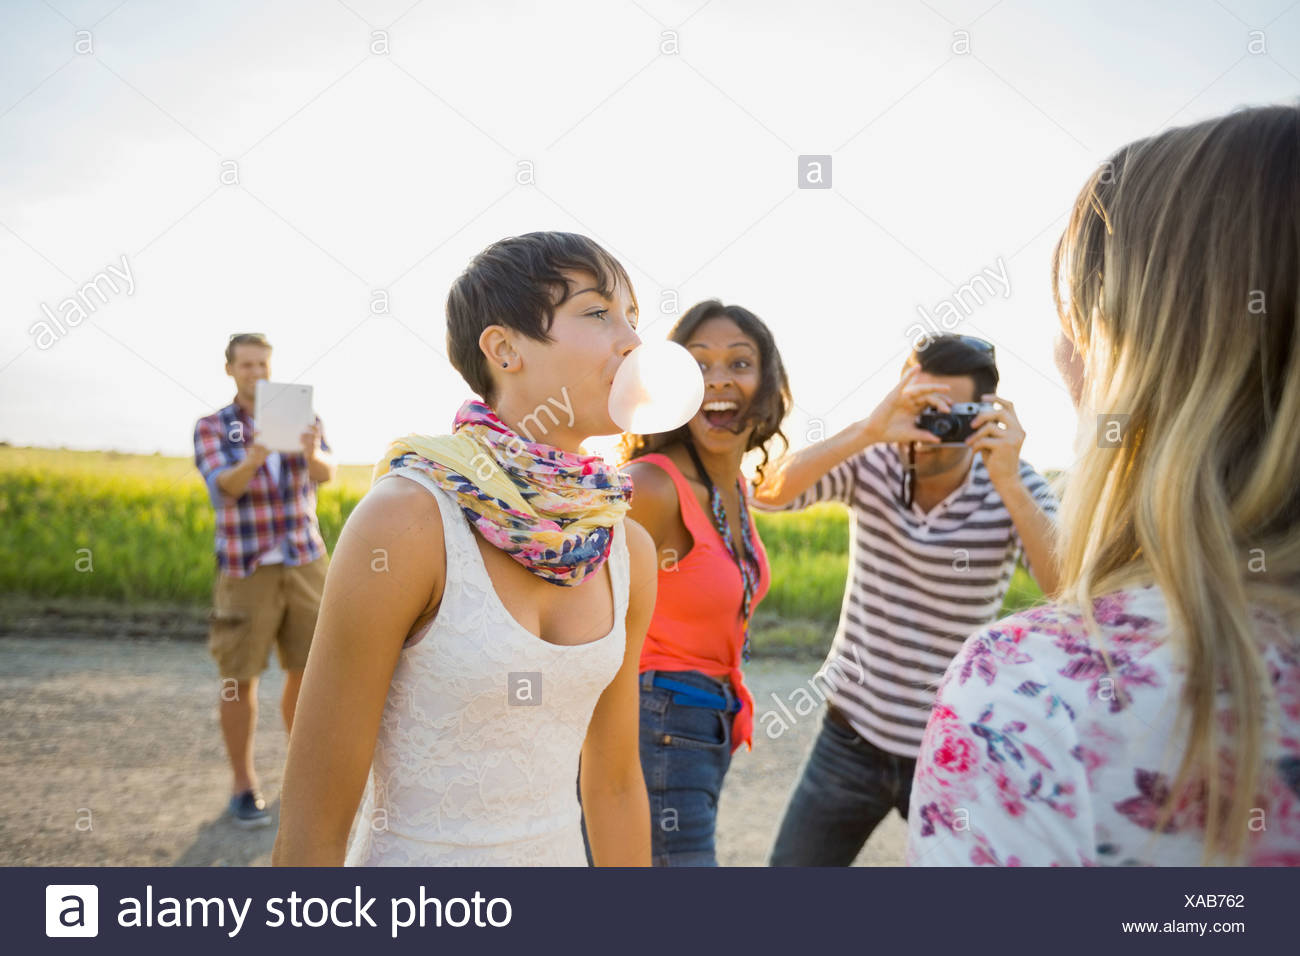 Woman looking at woman blowing bubble gum Photo Stock